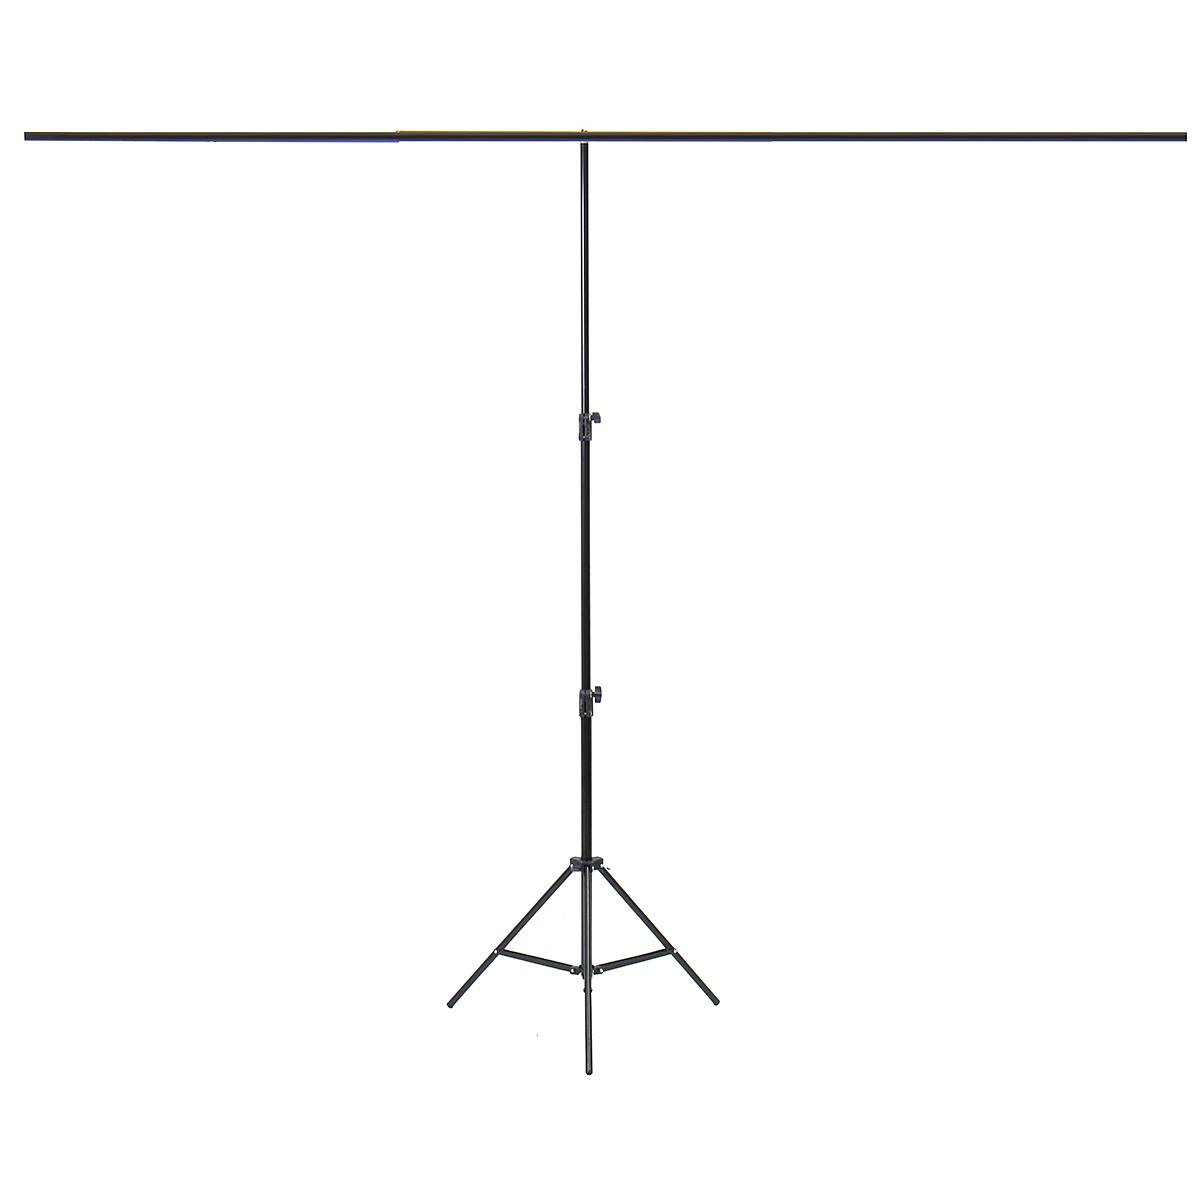 NEW 200*200cm Large Aluminium Photography Background Support Stand System w/4xClips 300cm 200cm about 10ft 6 5ft fundo coco coastal skyline3d baby photography backdrop background lk 1896